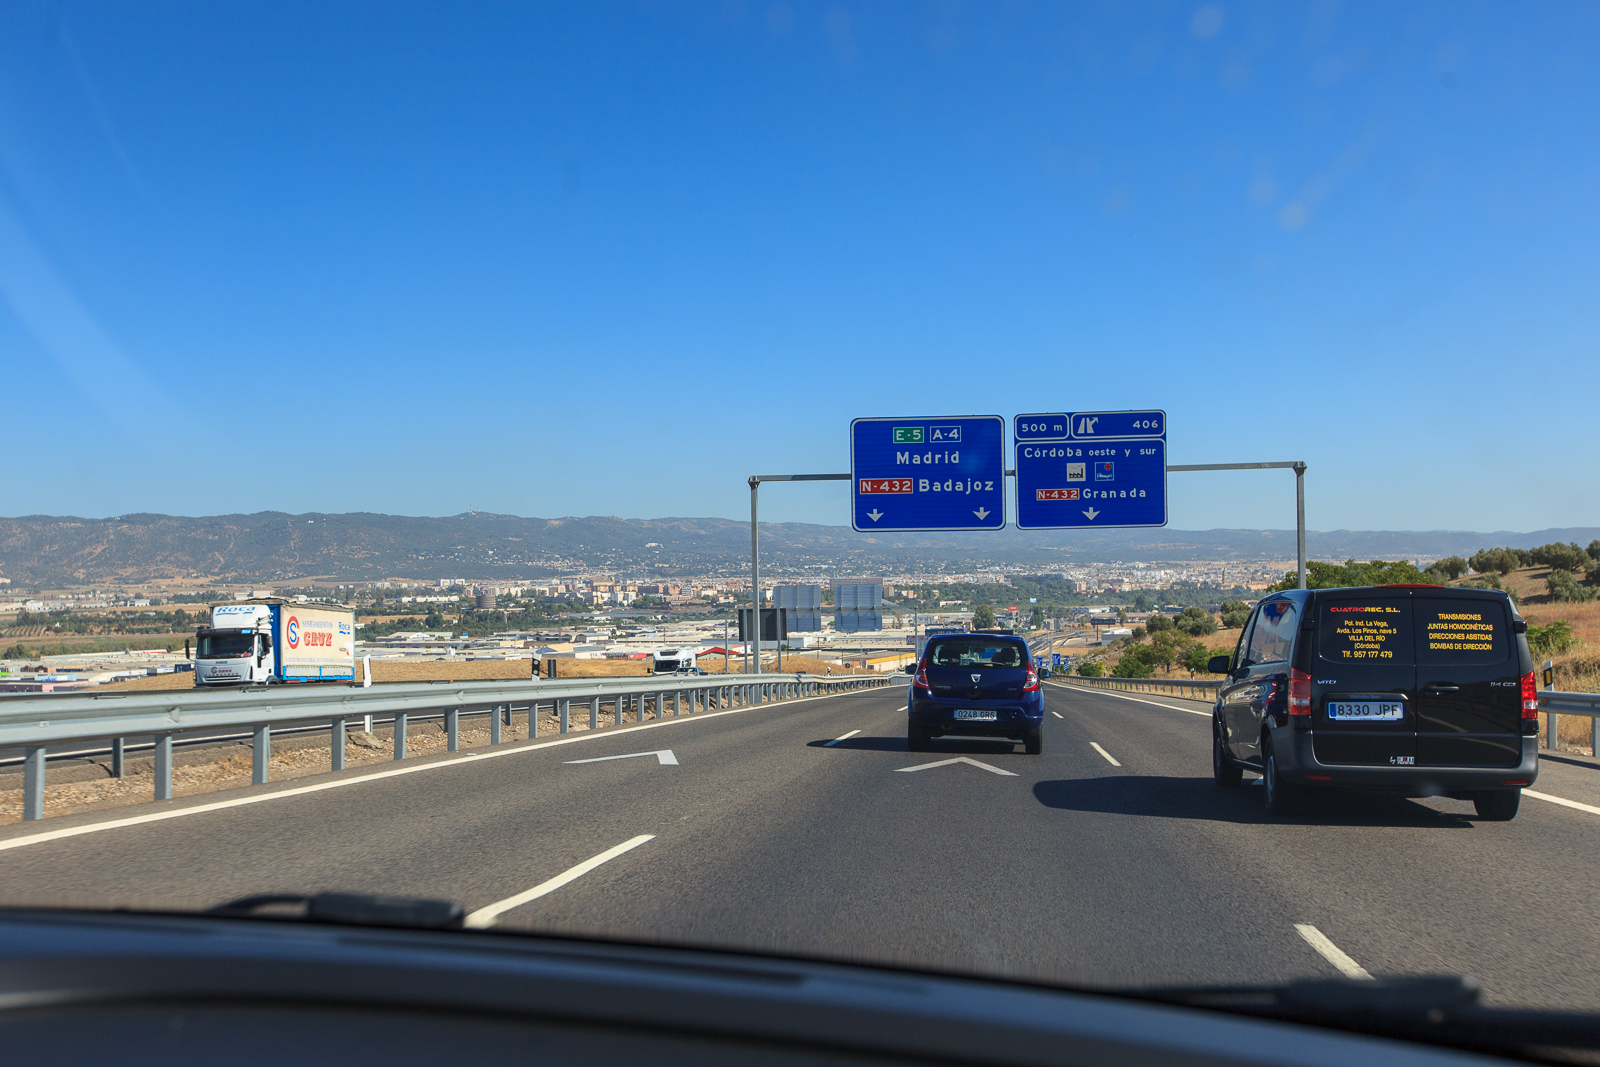 Dag05-Andalusie-074-IMG_56868